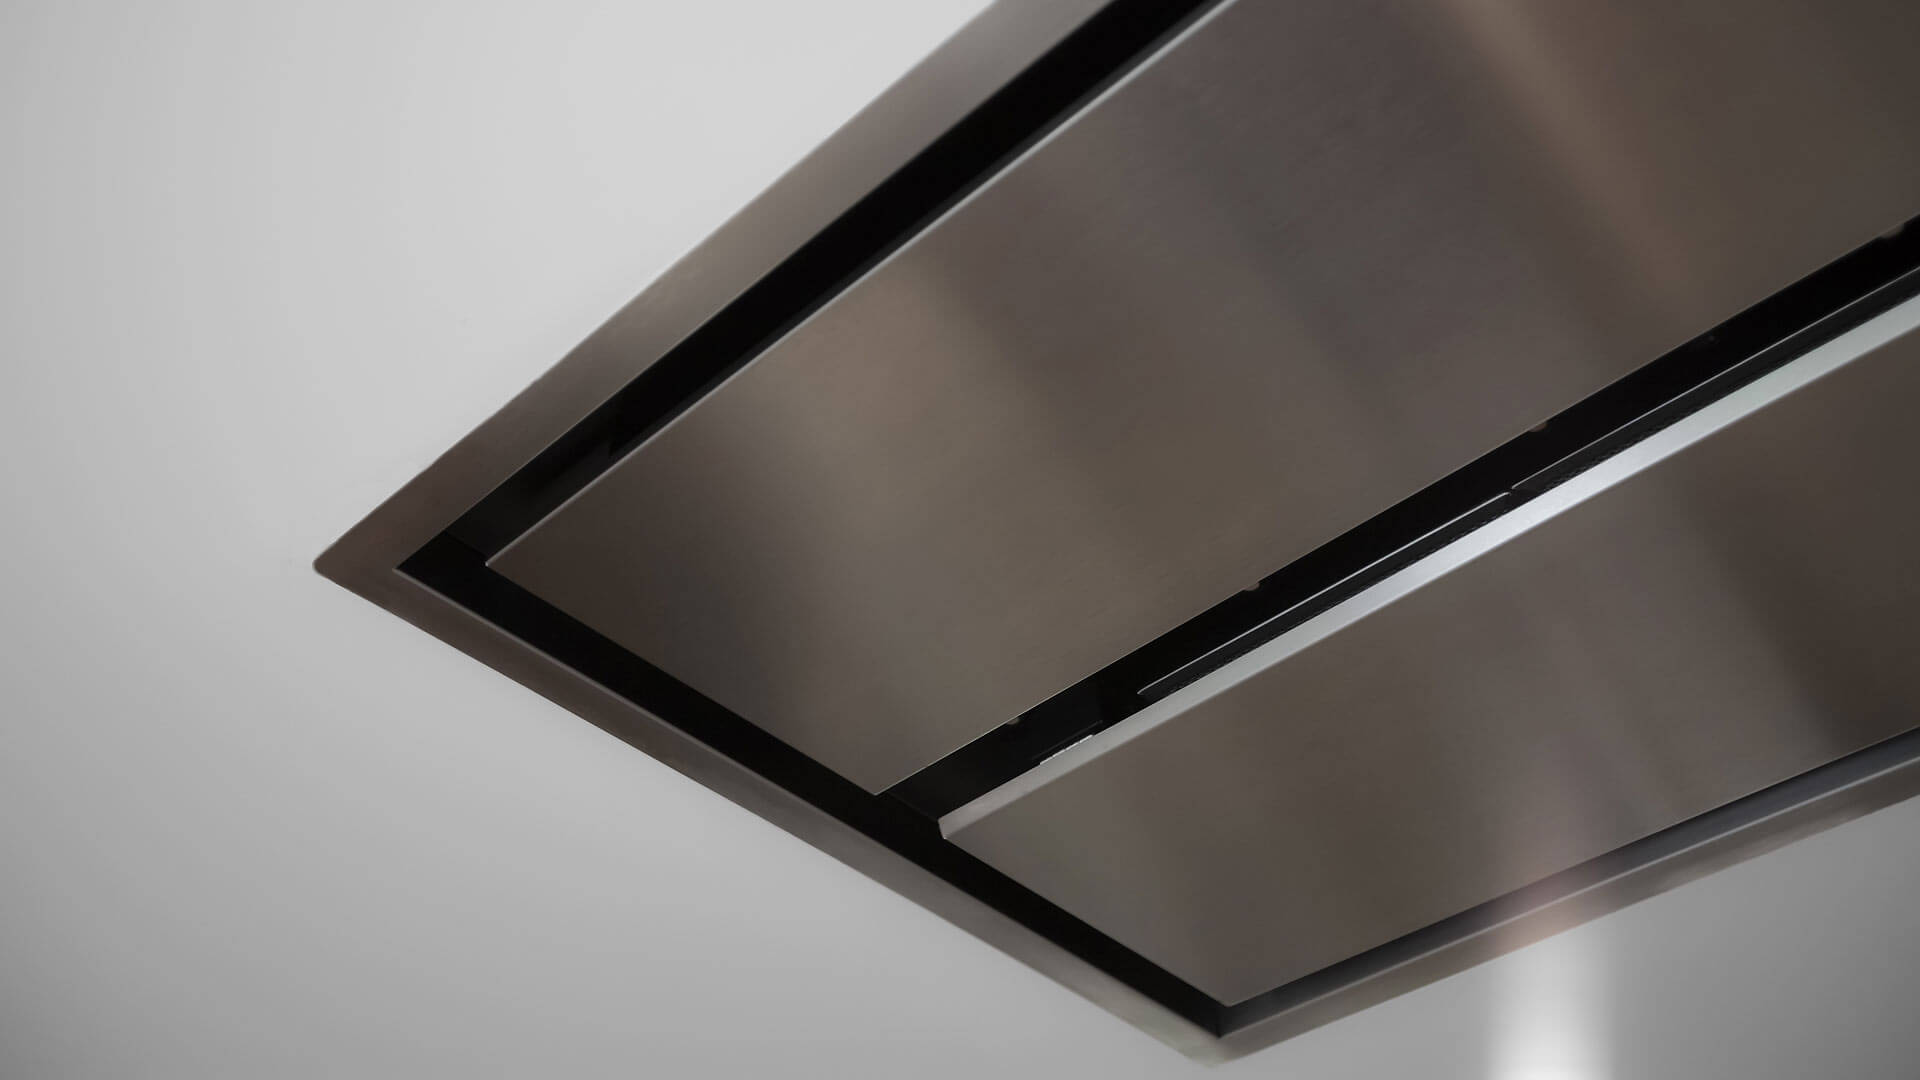 Kitchen range hood is direct-mounted to ceiling for a minimal look - Bridge House - Fennville, Michigan - Lake Michigan